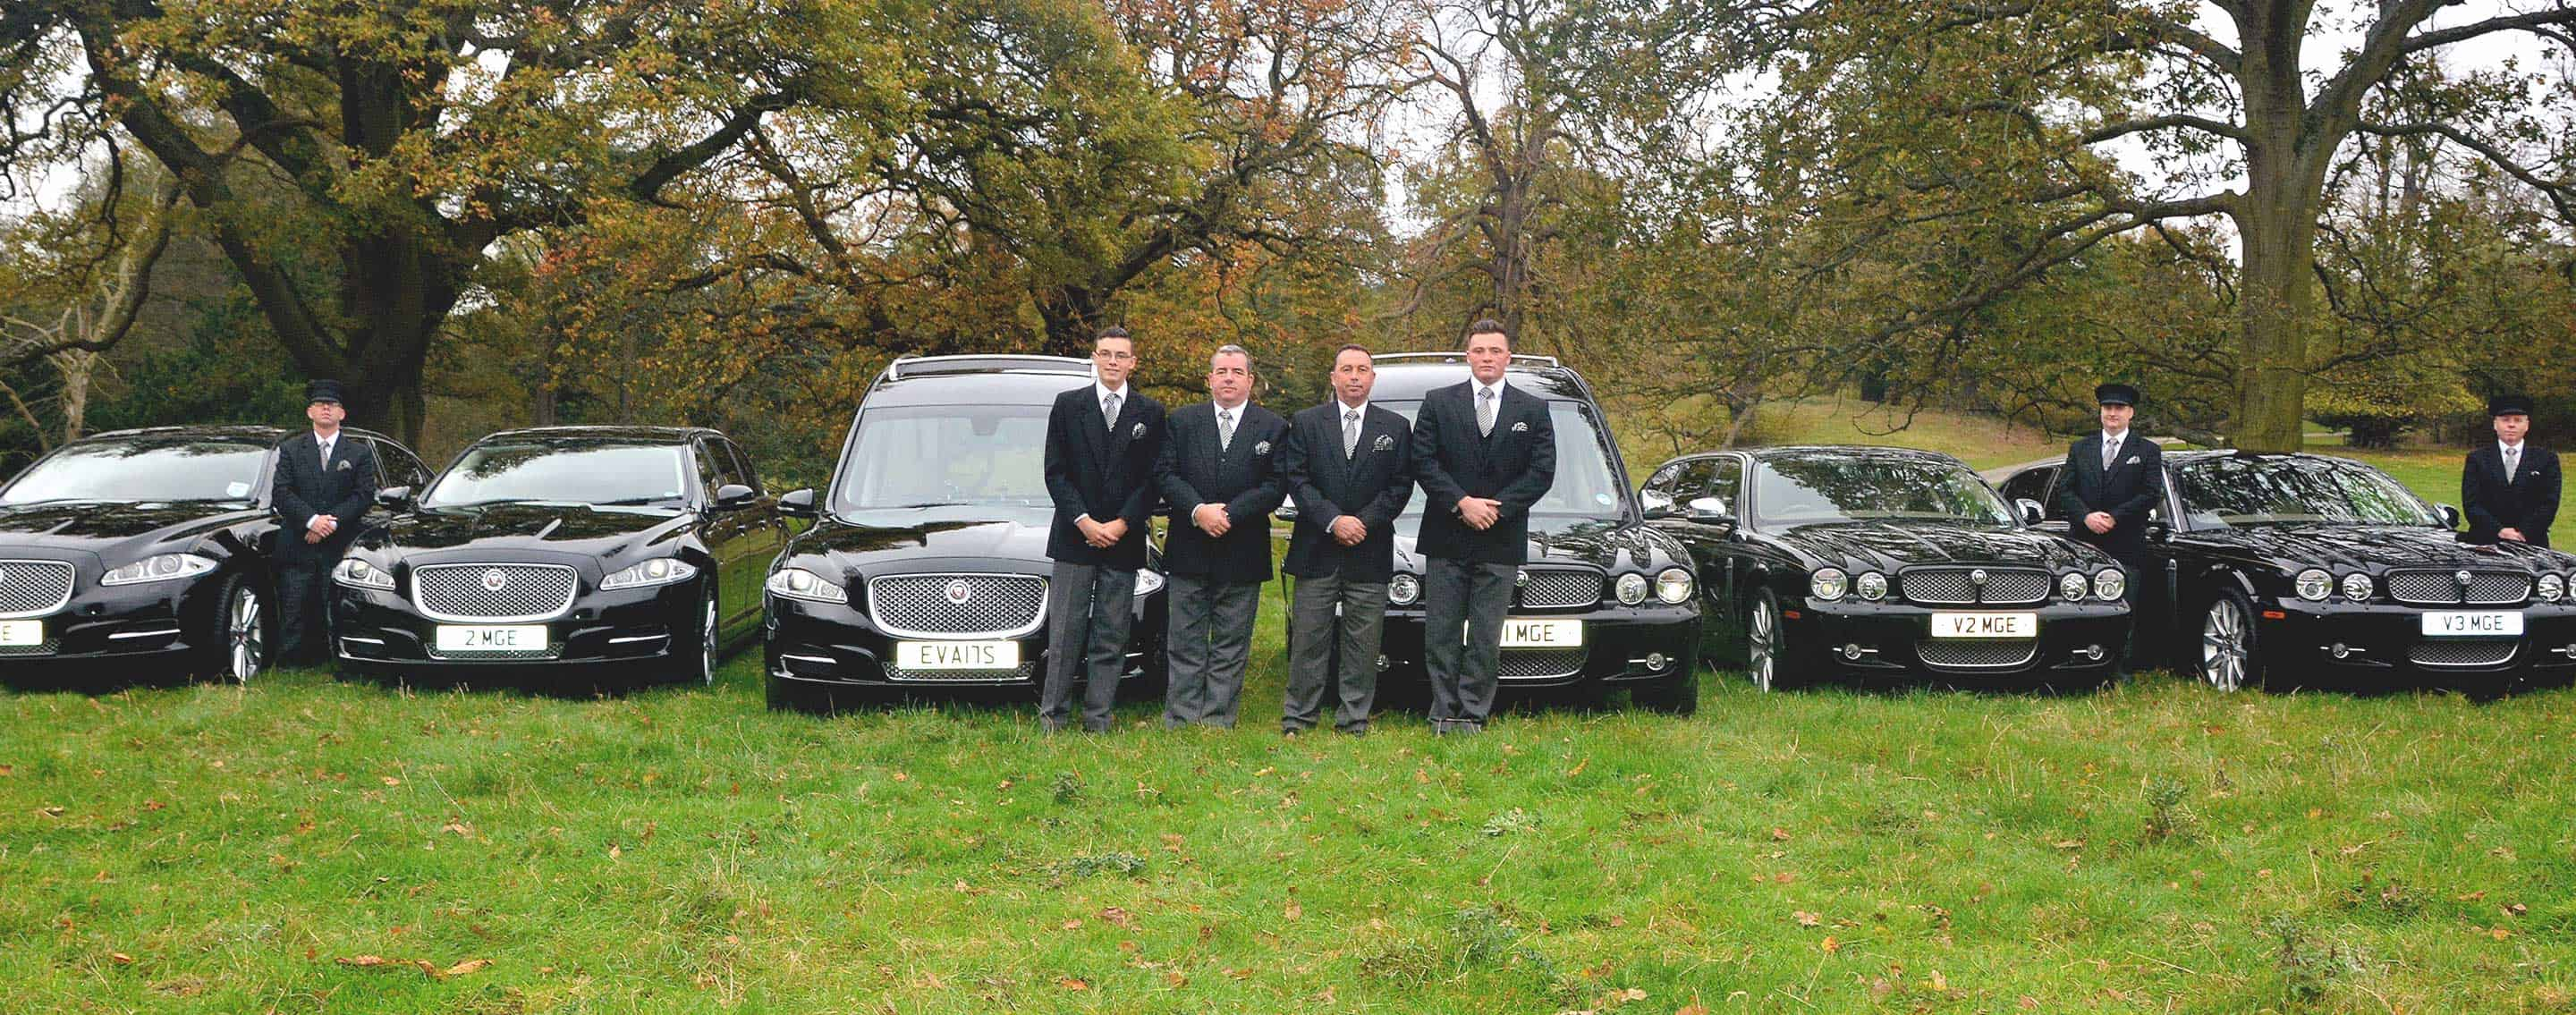 W Smith Sons Family Funeral Directors Over Half a Century of Expertise